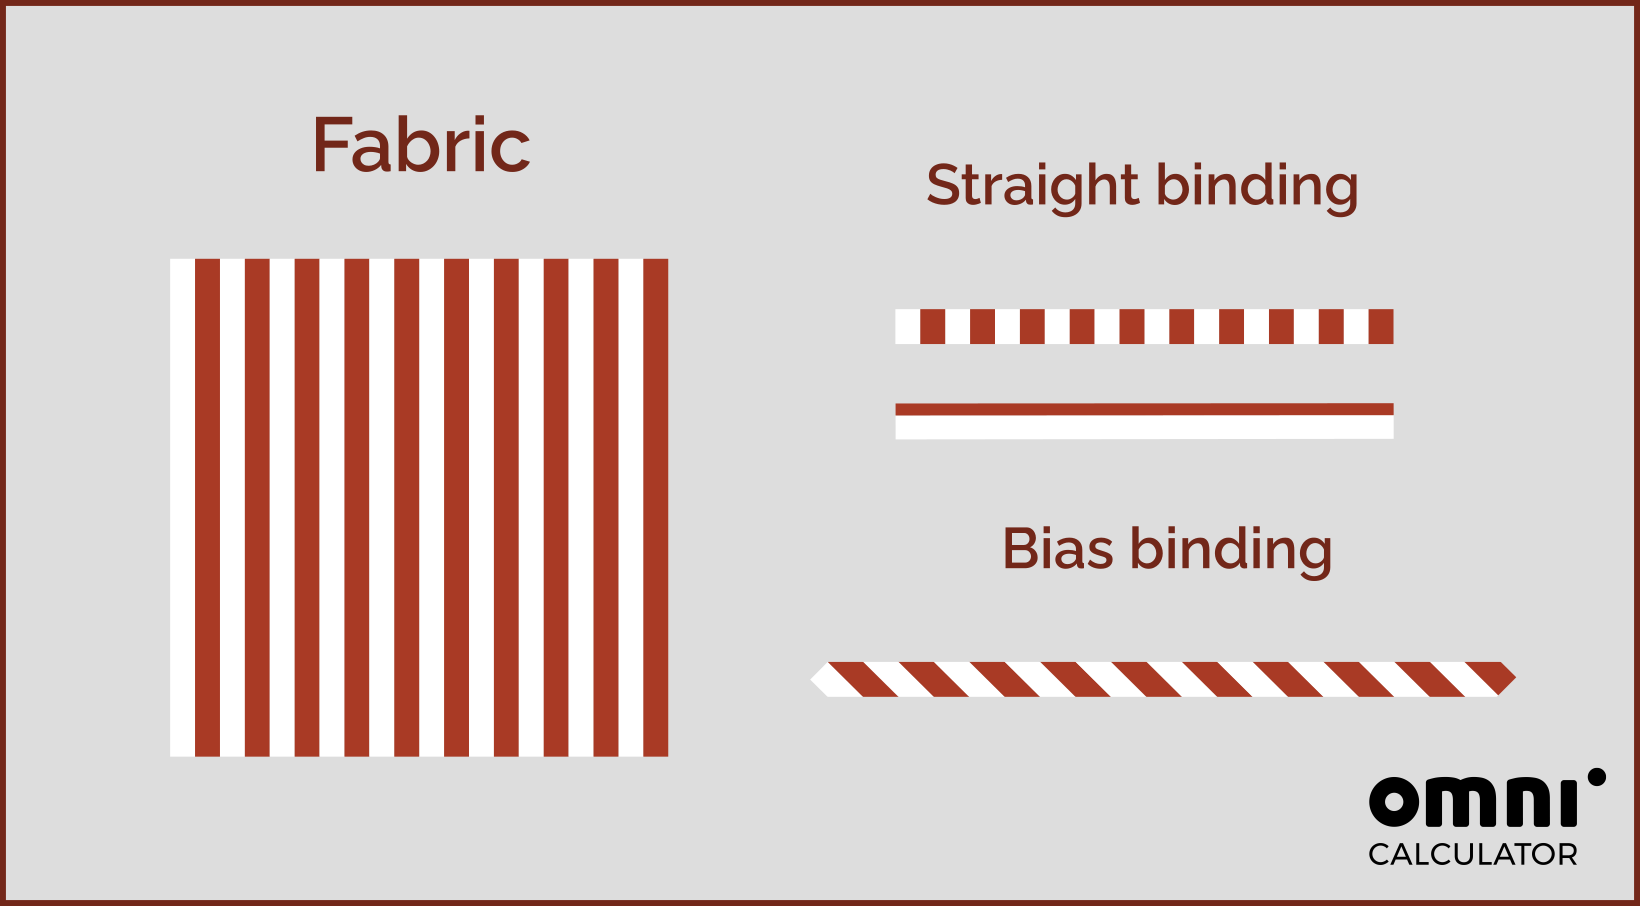 The difference between straight and bias binding